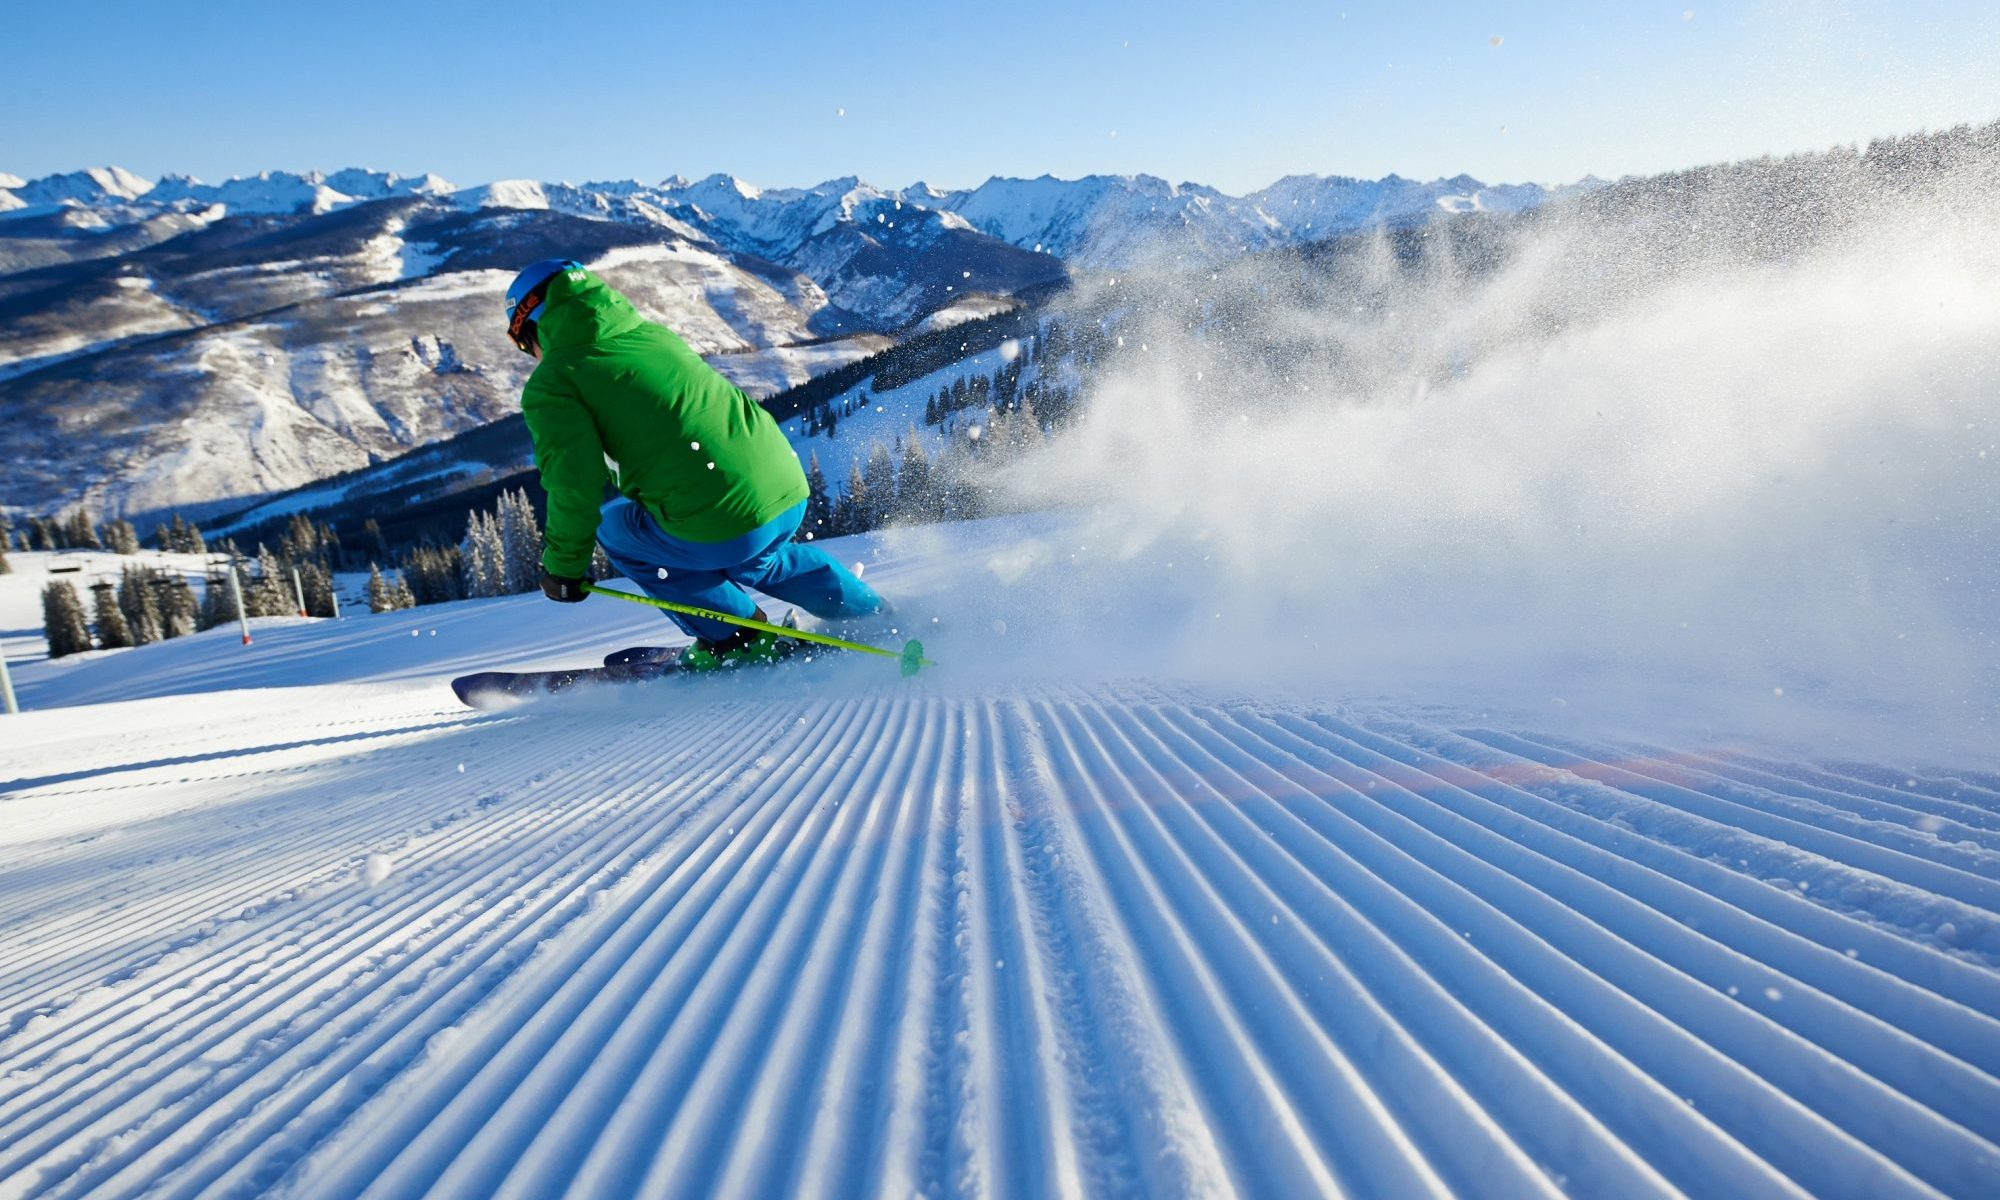 A groomed run in Vail Mountain. Photo- Jack Affleck. Vail Resorts Commits to $175 Million to $180 Million in Capital Investments to Reimagine the Guest Experience for the 2019-20 Season